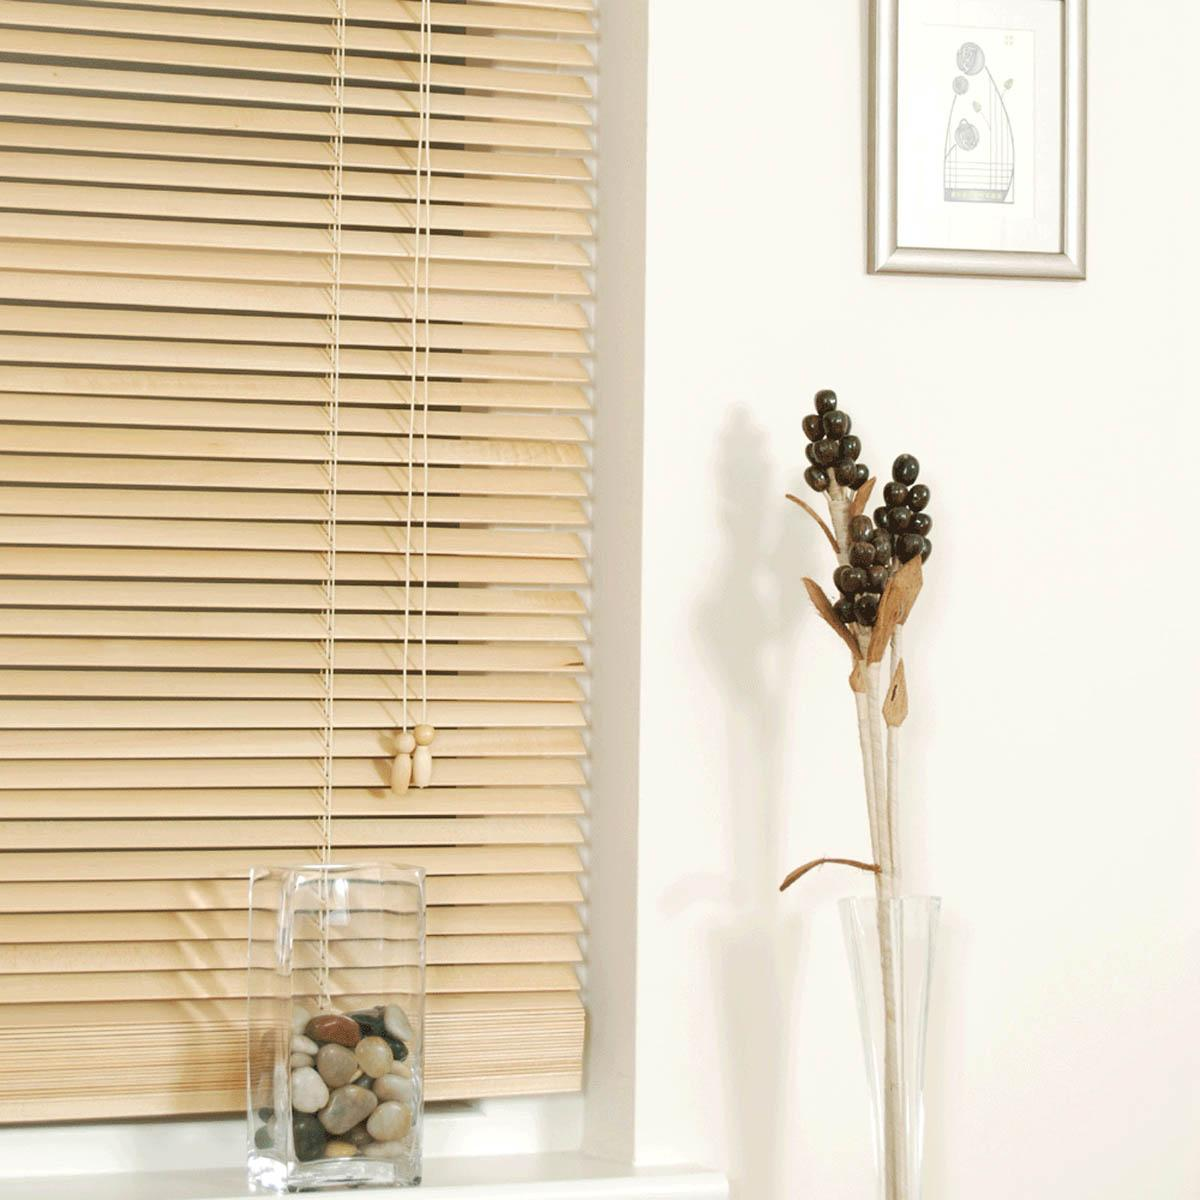 Natural Wooden Venetian Blinds